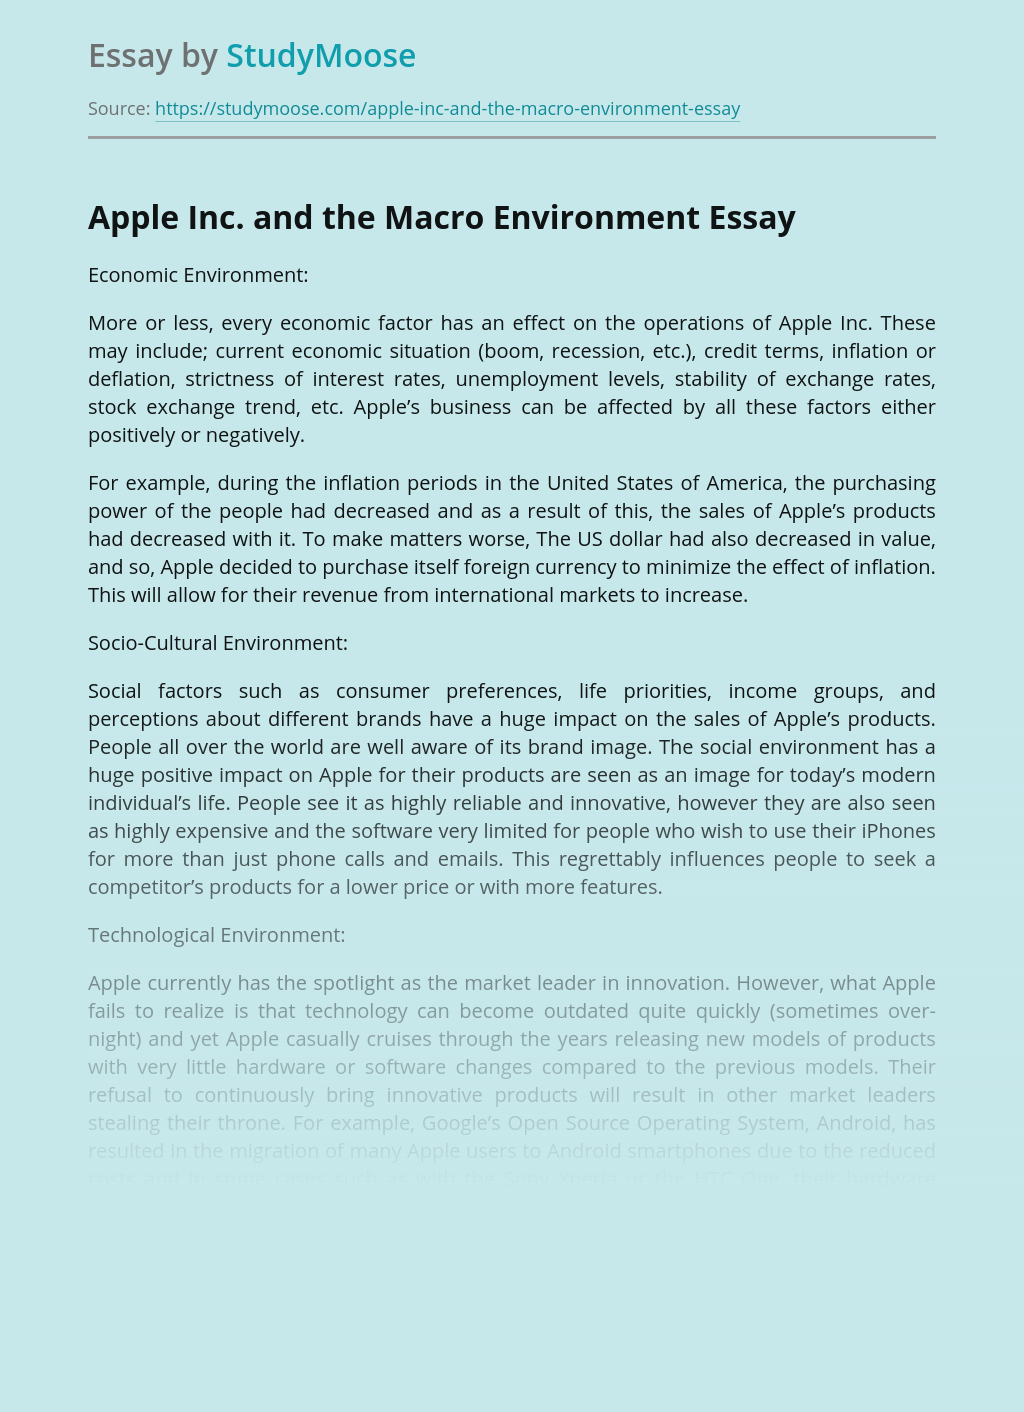 Apple Inc. and the Macro Environment